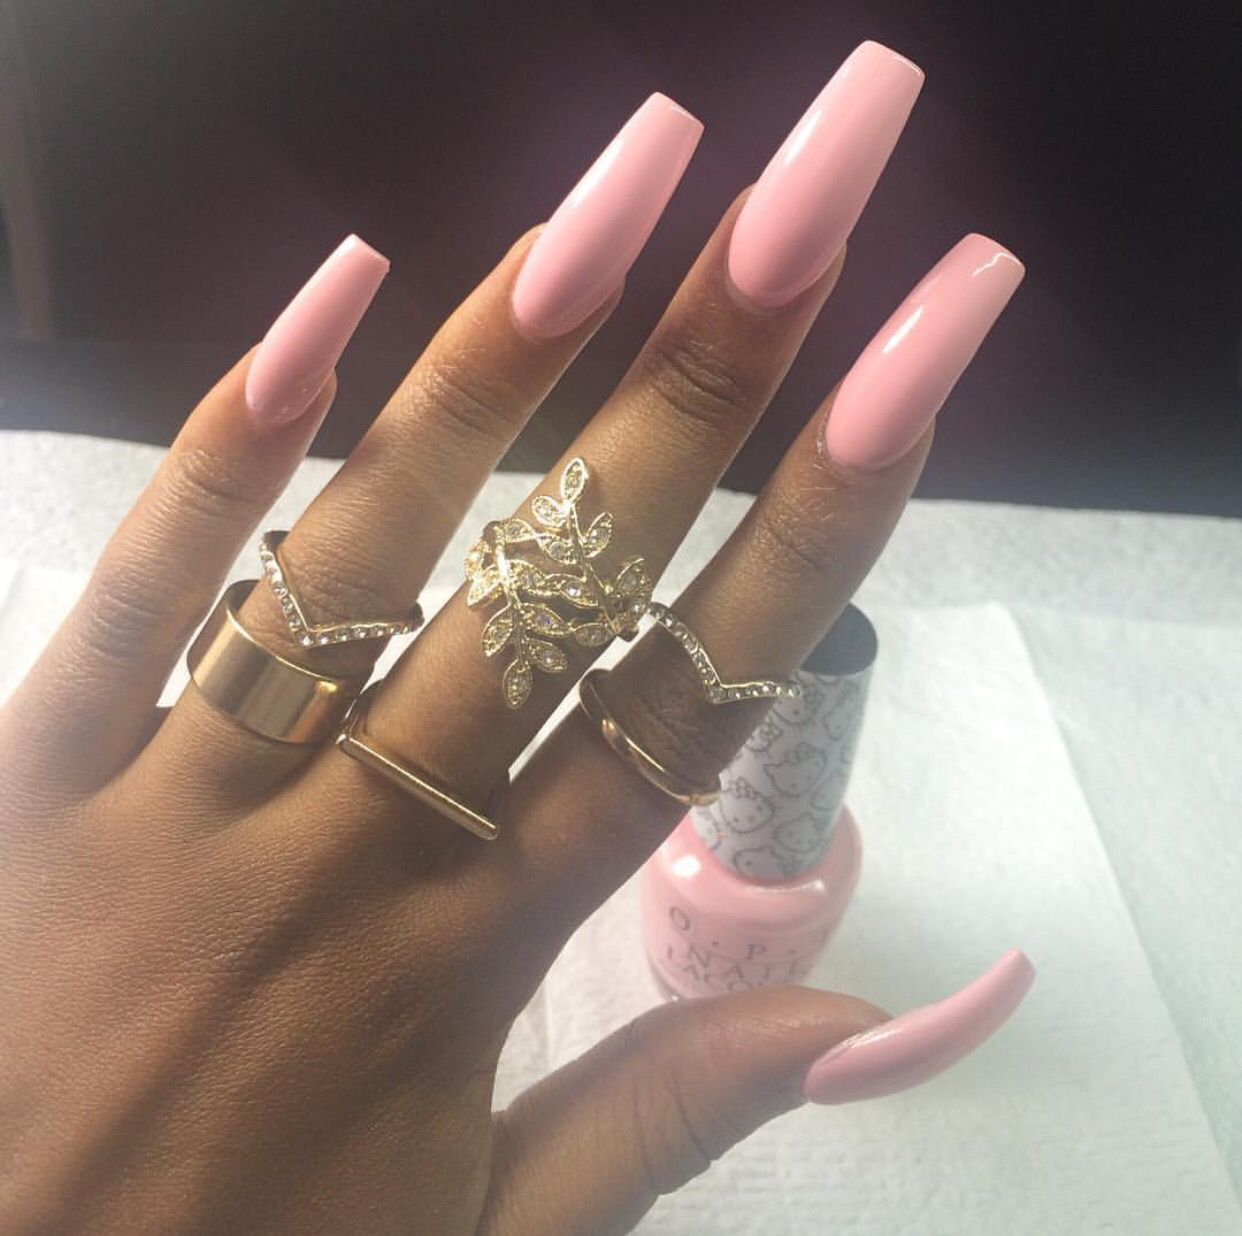 Cool Dynamic Strong Powerful Pink Long Acrylic Nails In 2019 Long Acrylic Nails Nails Cute Nails